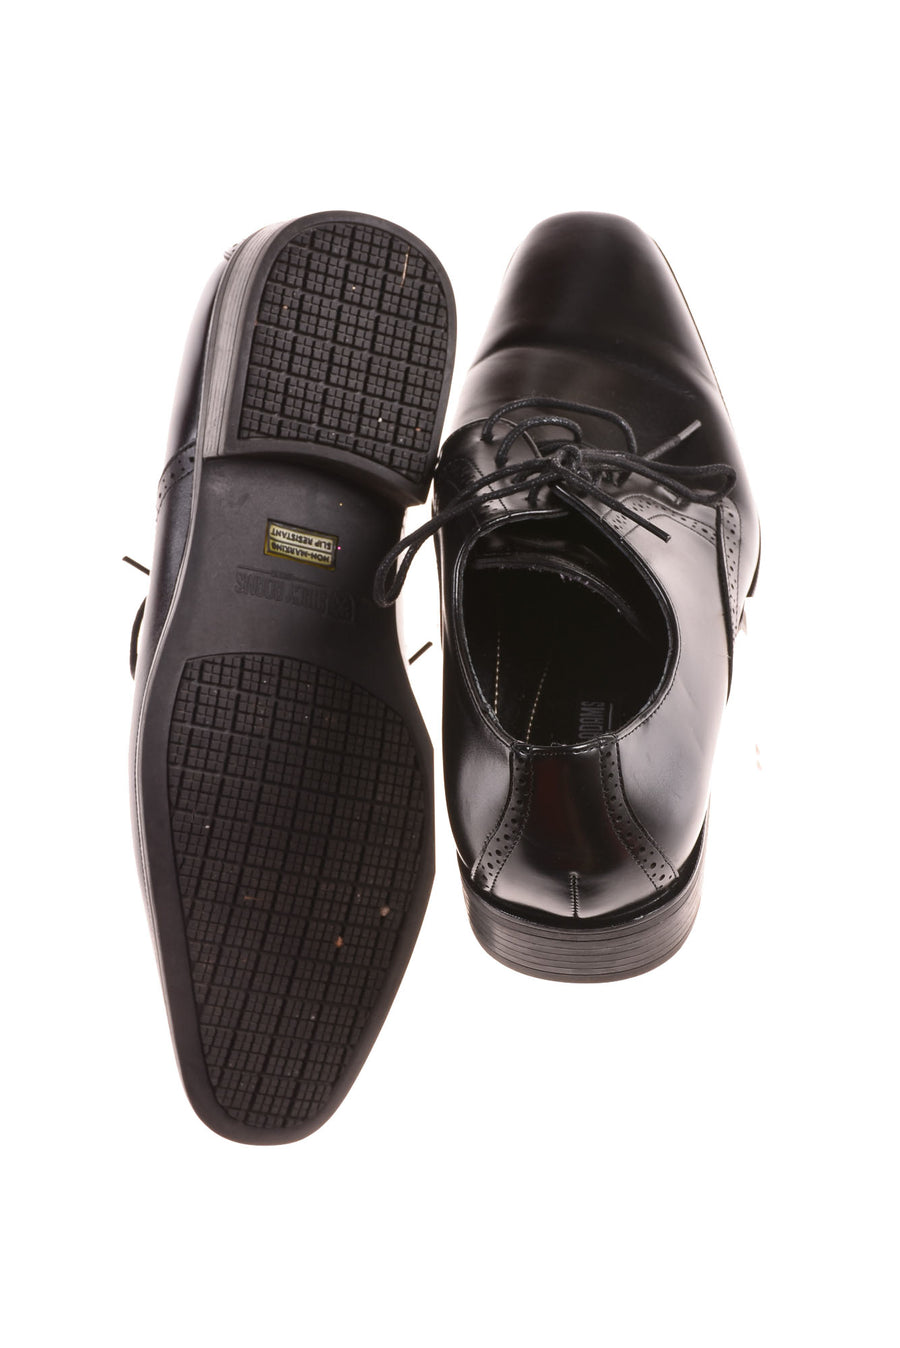 USED Stacy Adams Men's Shoes 11 Black